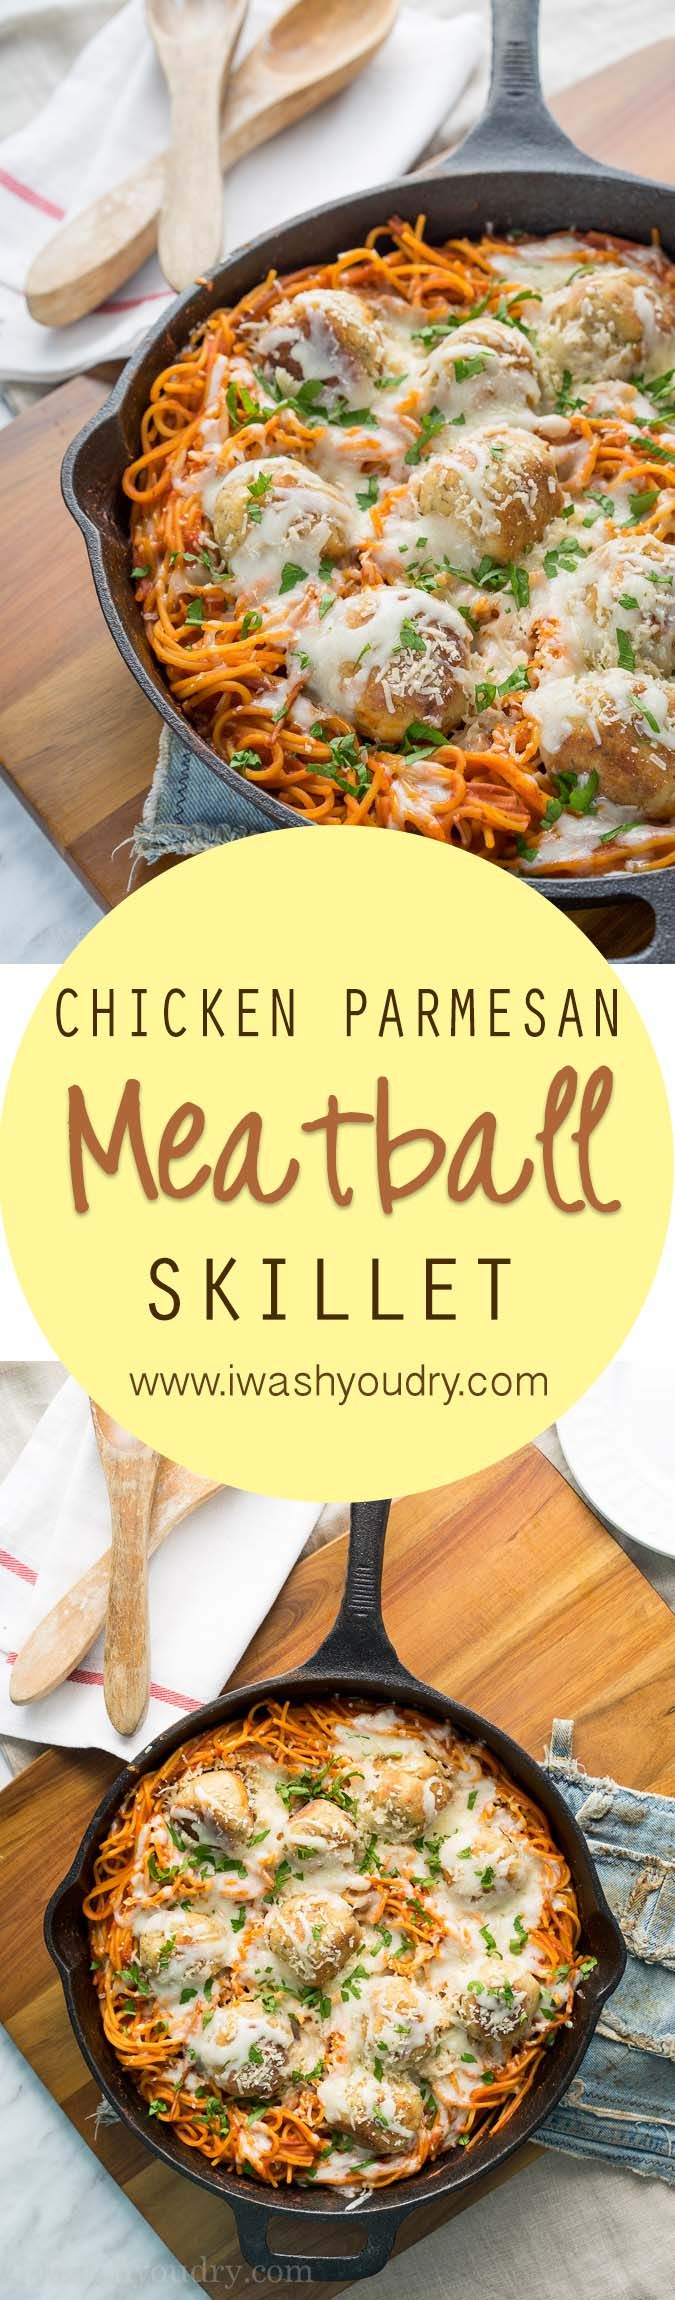 classic! This Chicken Parmesan Meatball Skillet only uses one skillet ...